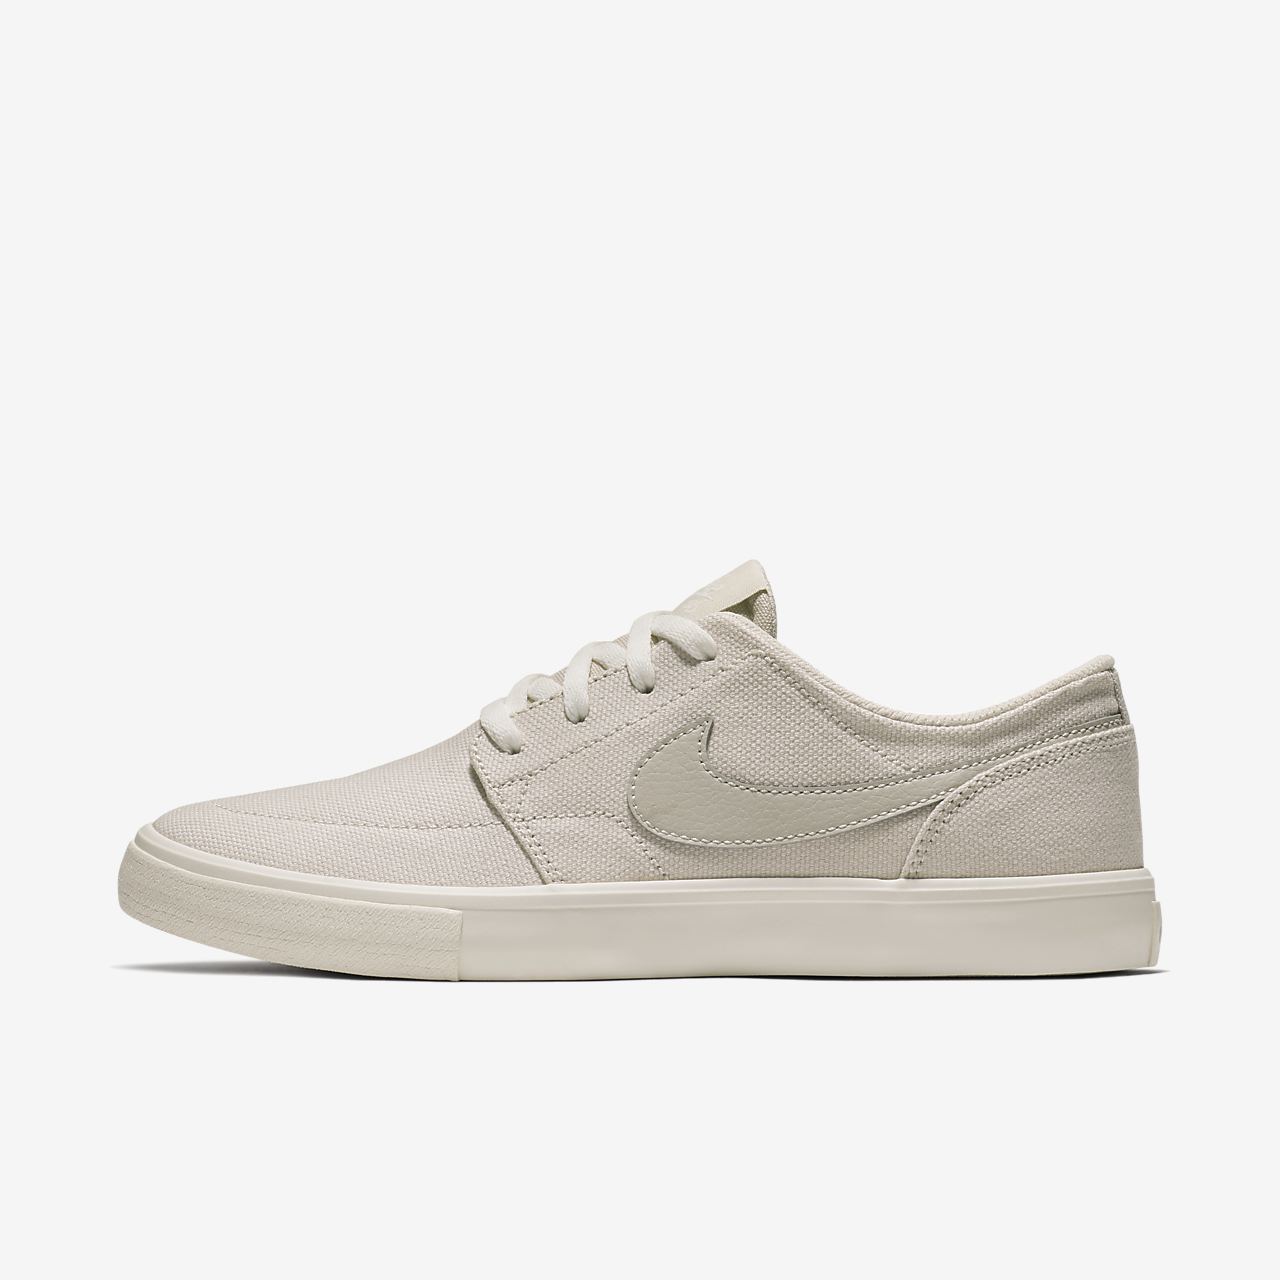 Nike SB Portmore II Women's Skateboarding Shoes White/Black mE5957O